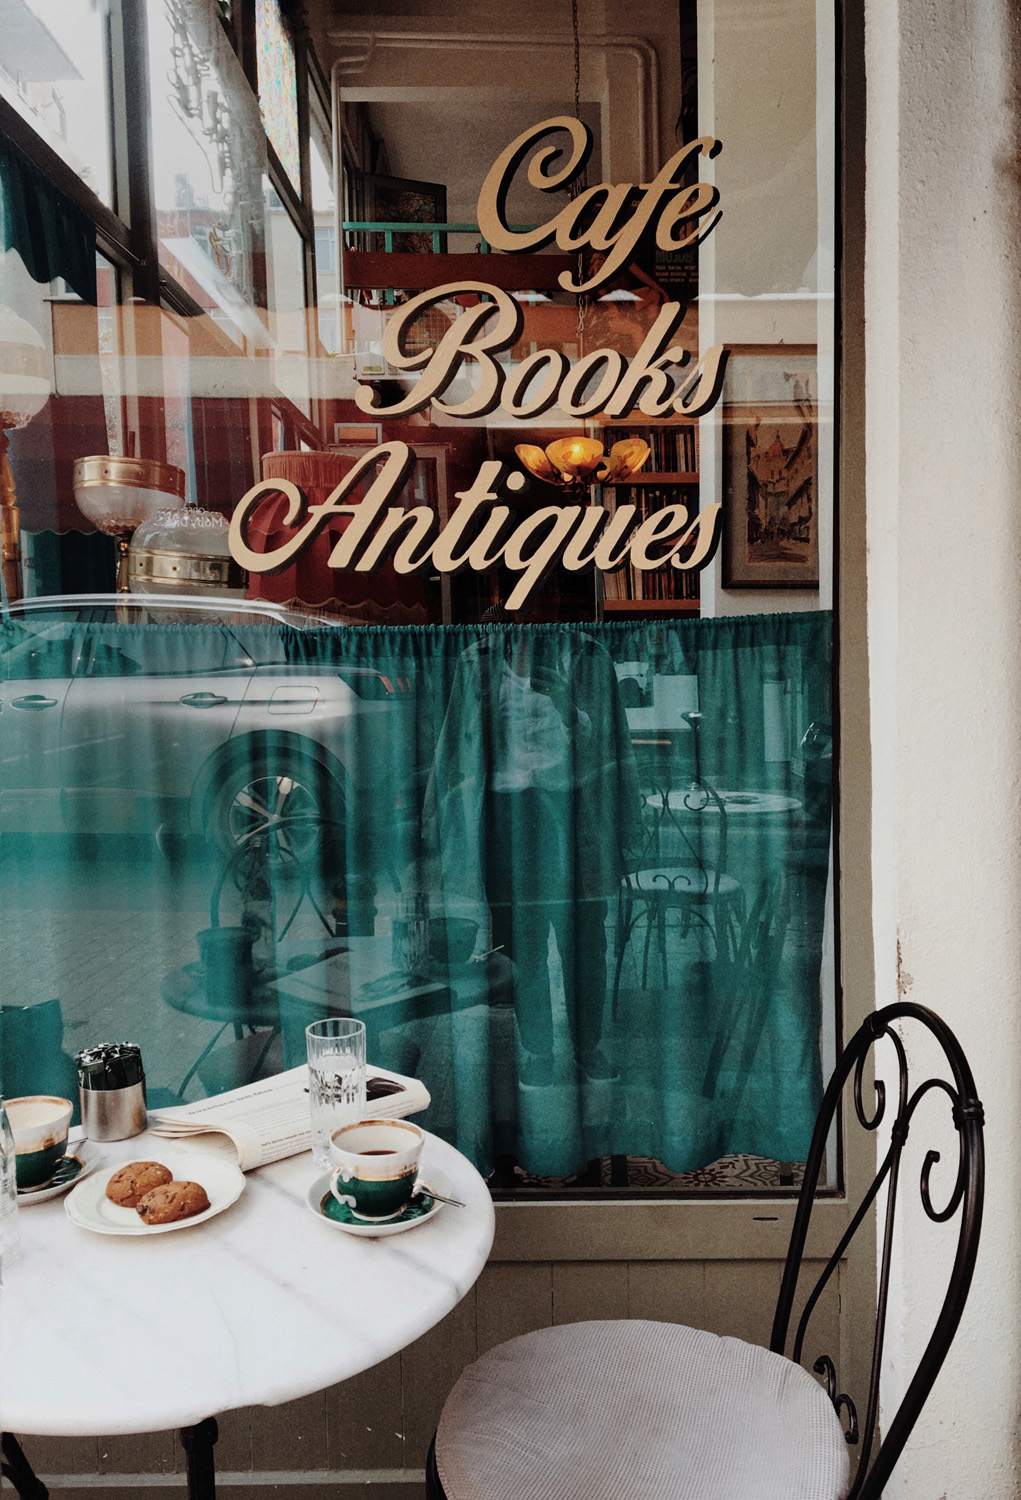 Cafe photography Project: we travel